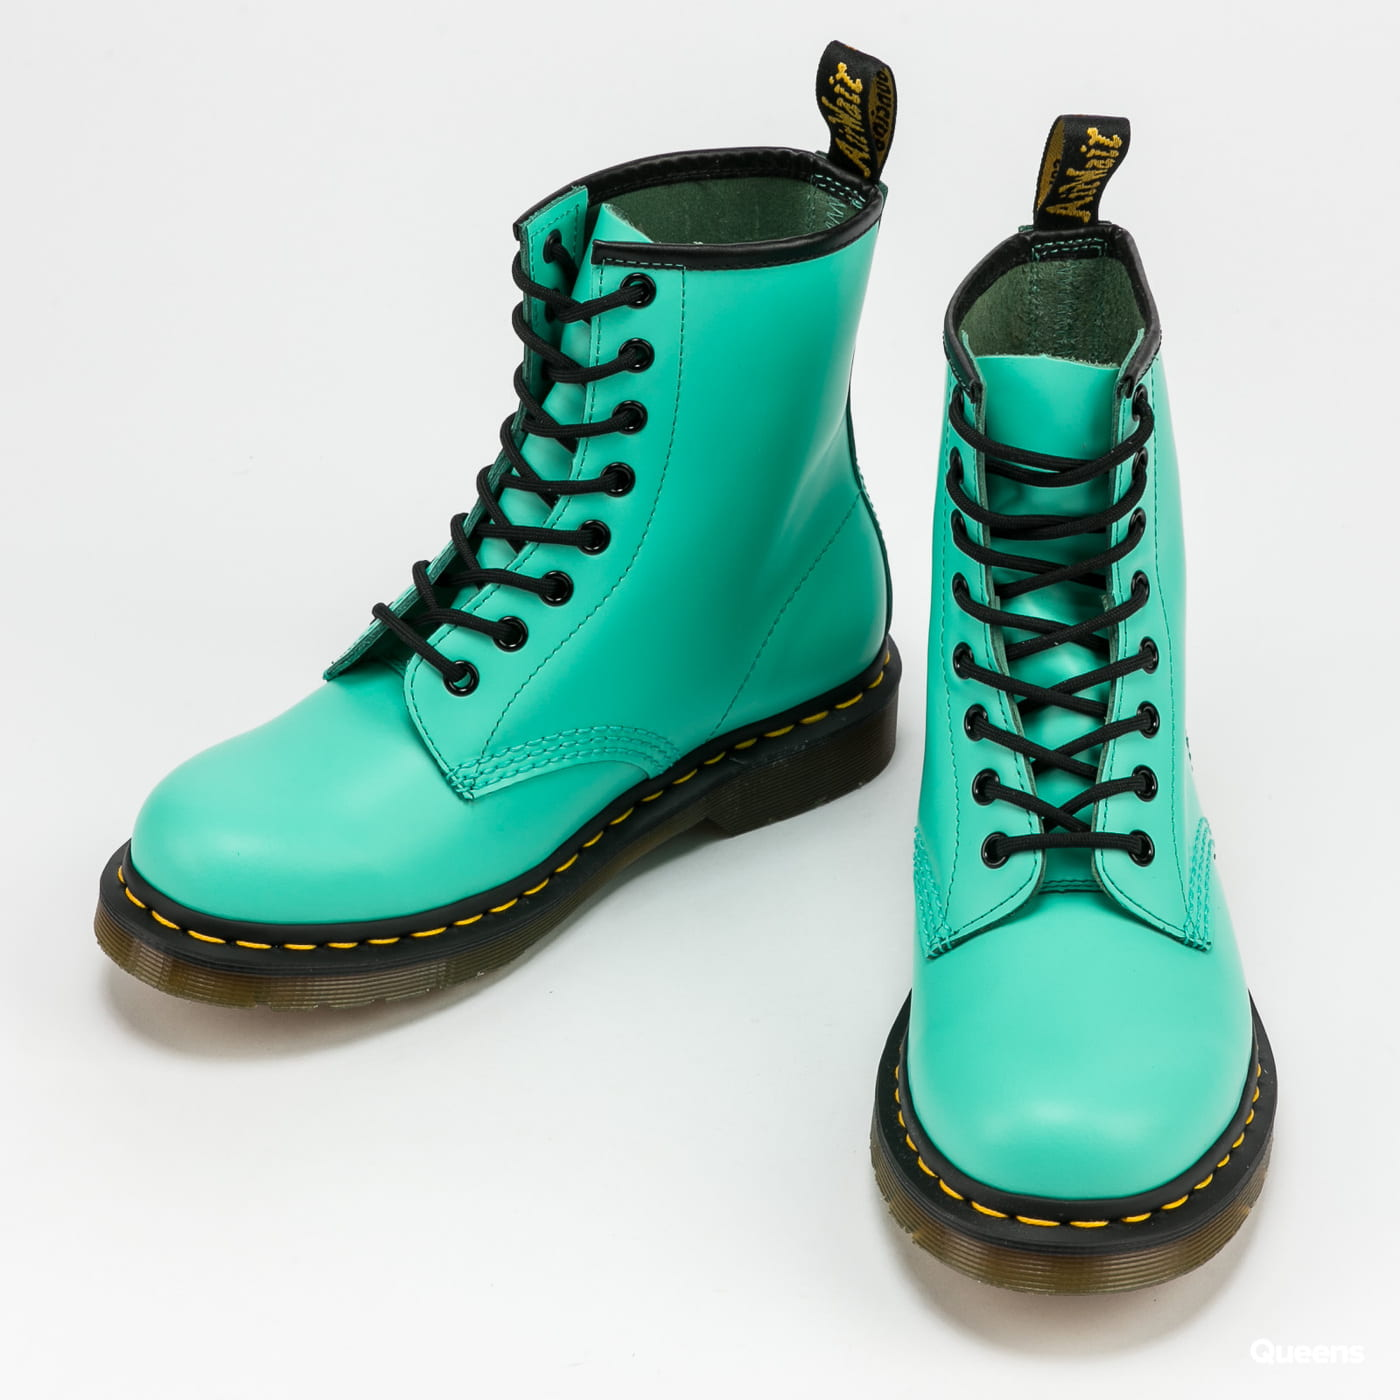 Dr. Martens 1460 peppermint green smooth